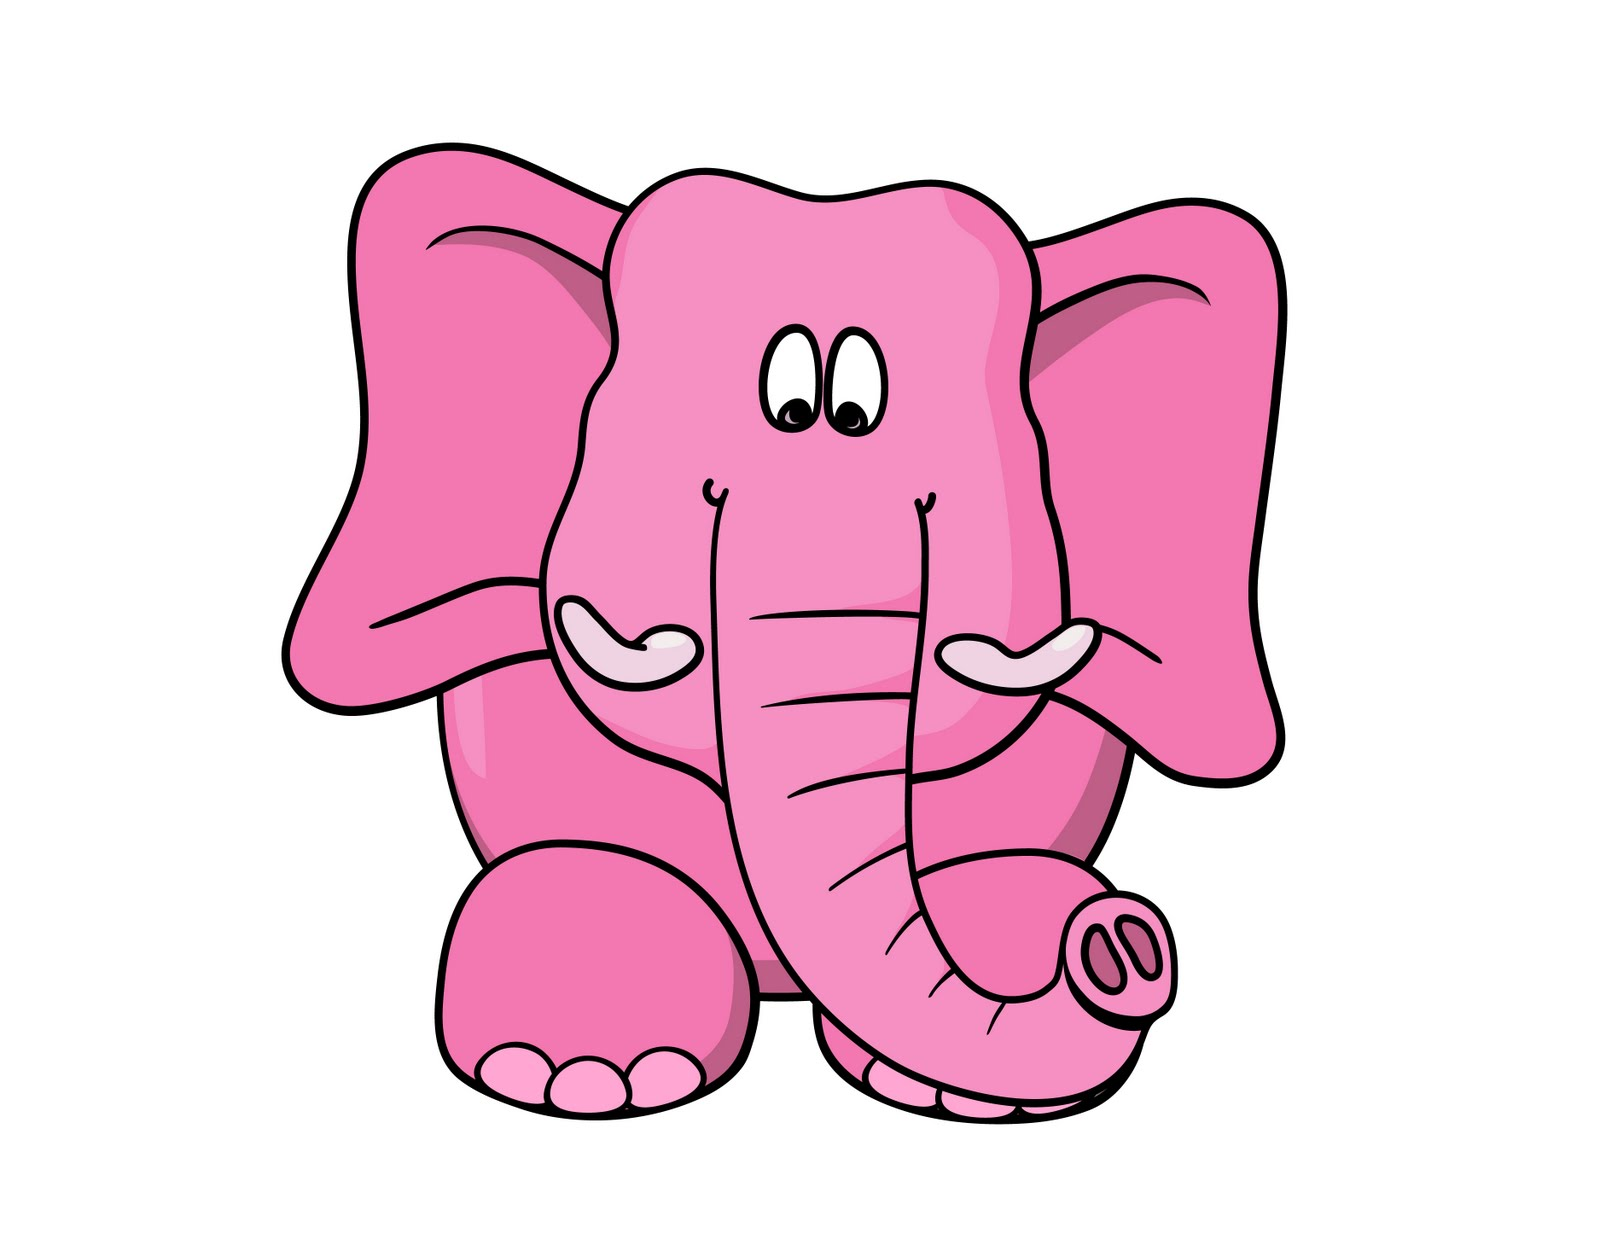 Cute Elephant Cartoon Wallpapers Free Baby Animals Cartoon Pictures Download Free Clip Art